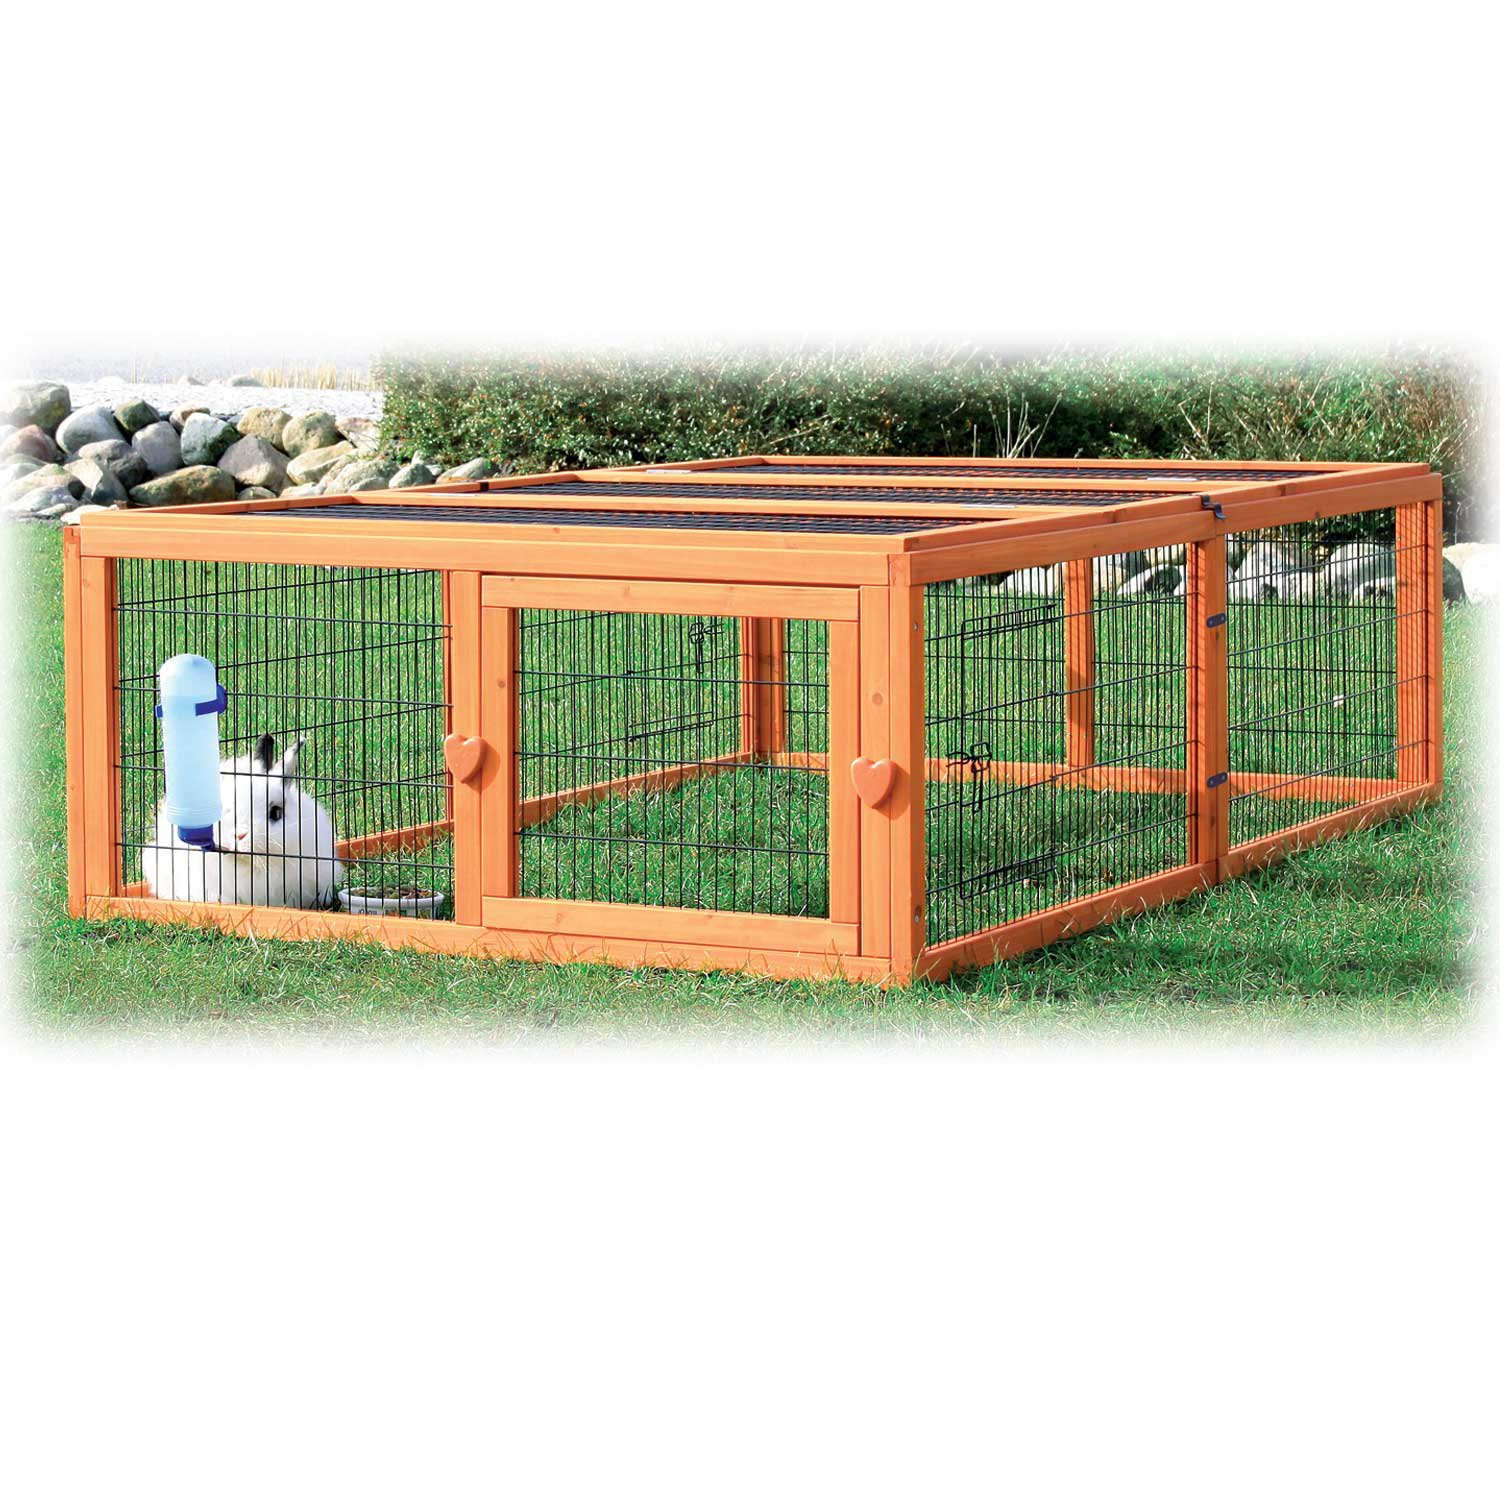 Trixie Natura Flat Roof Outdoor Rabbit Run 18.75 L X 68.5 W X 42.75 H 68.5 IN Natural Wood